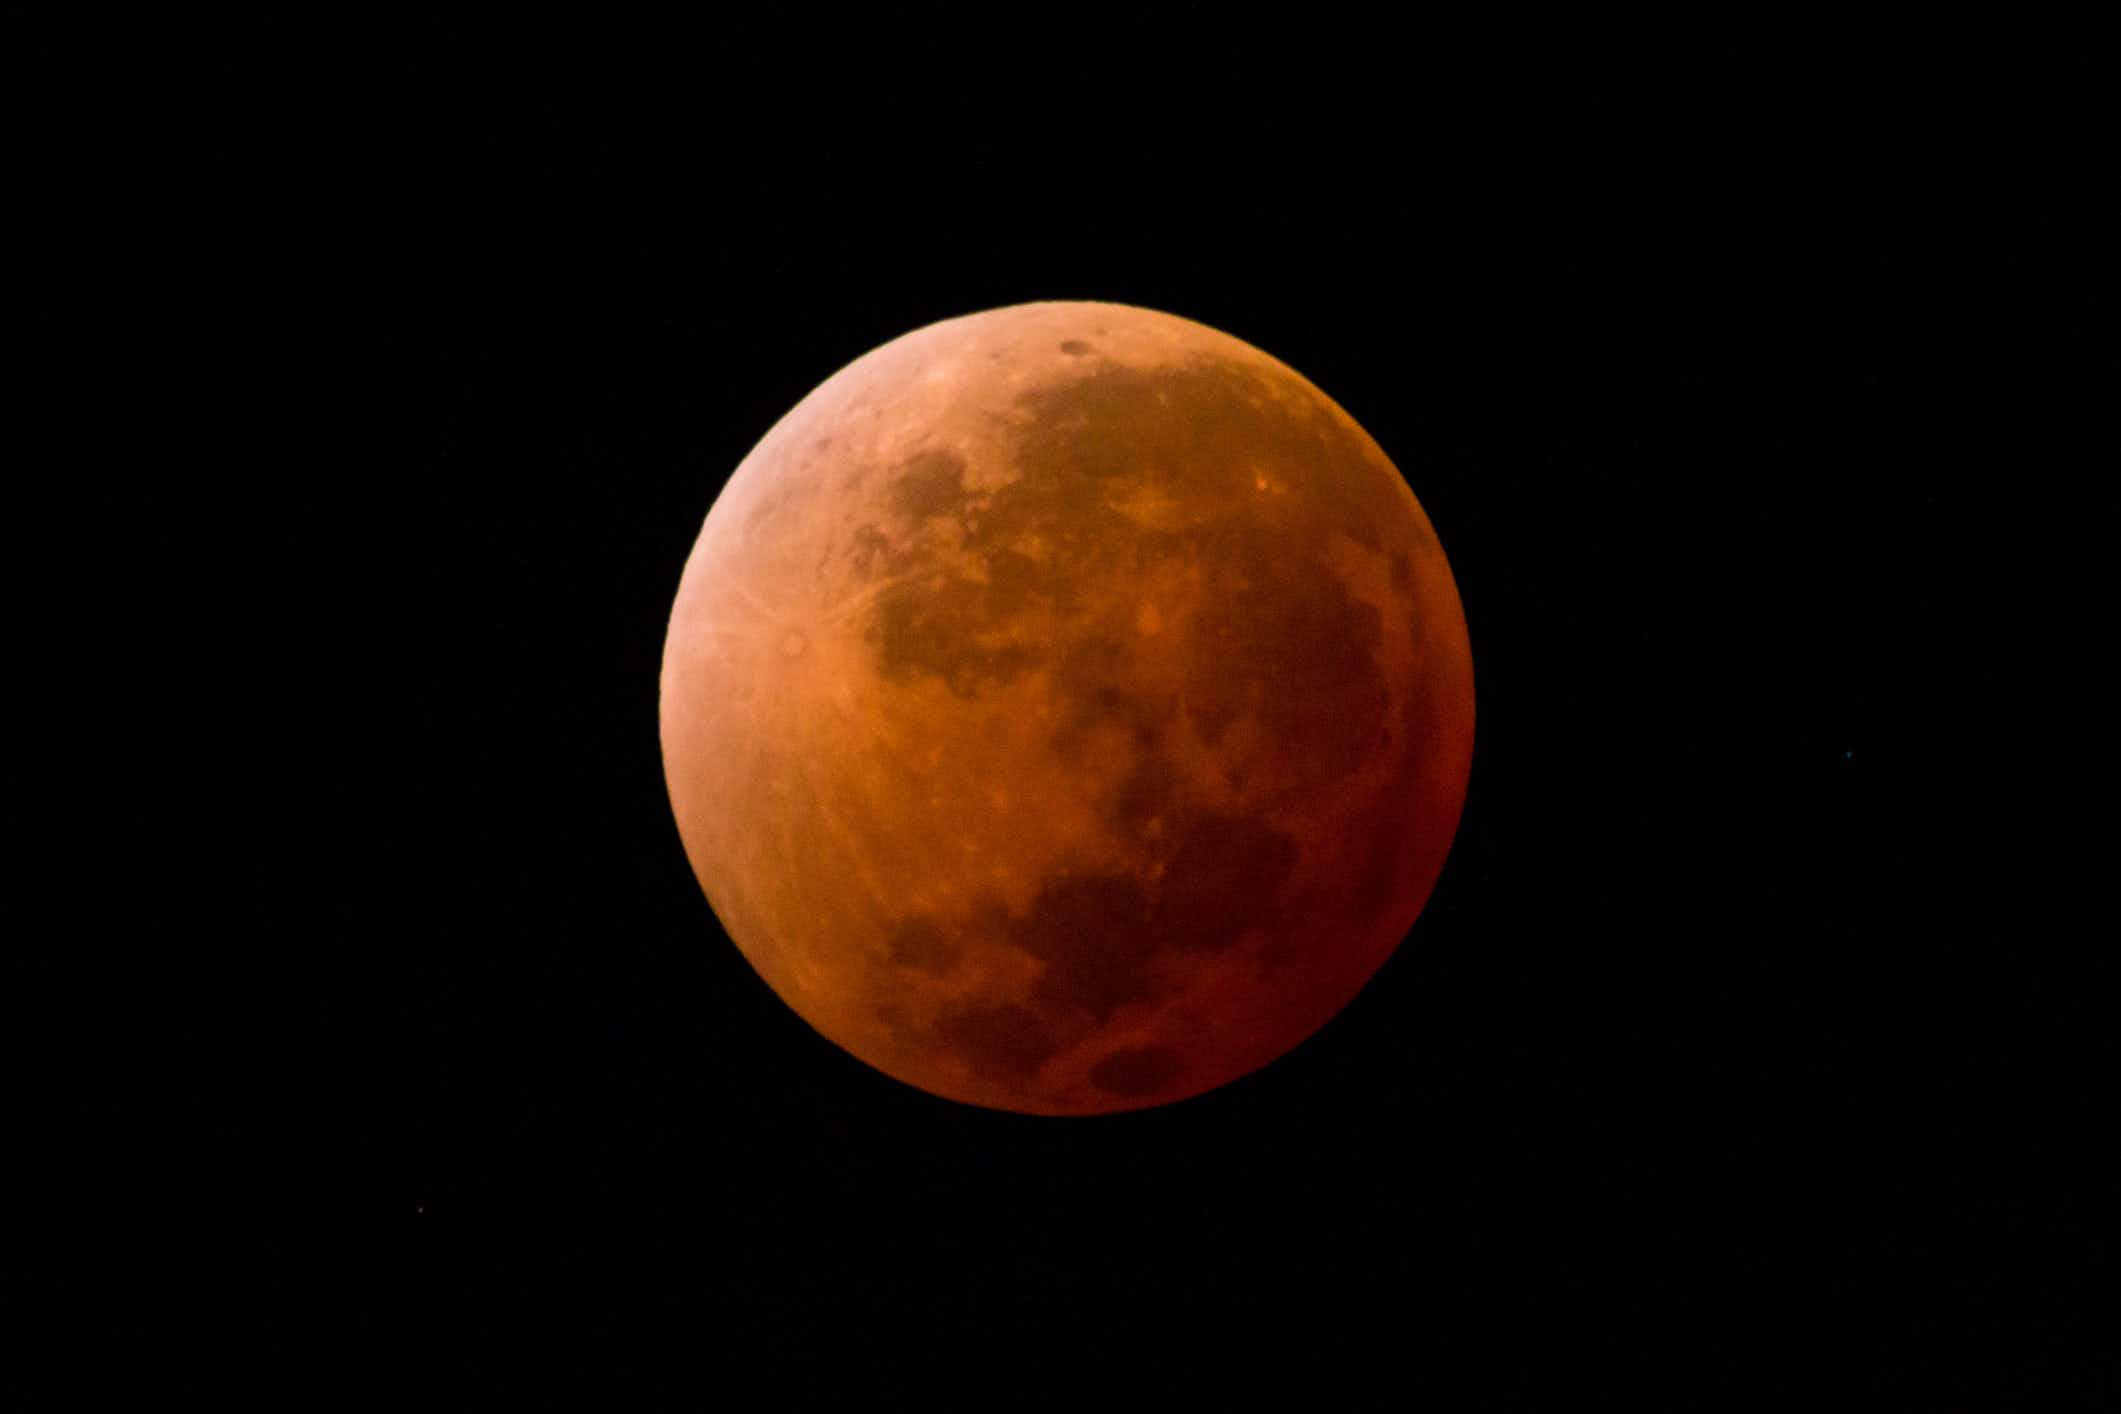 The longest lunar eclipse of this century is happening this week